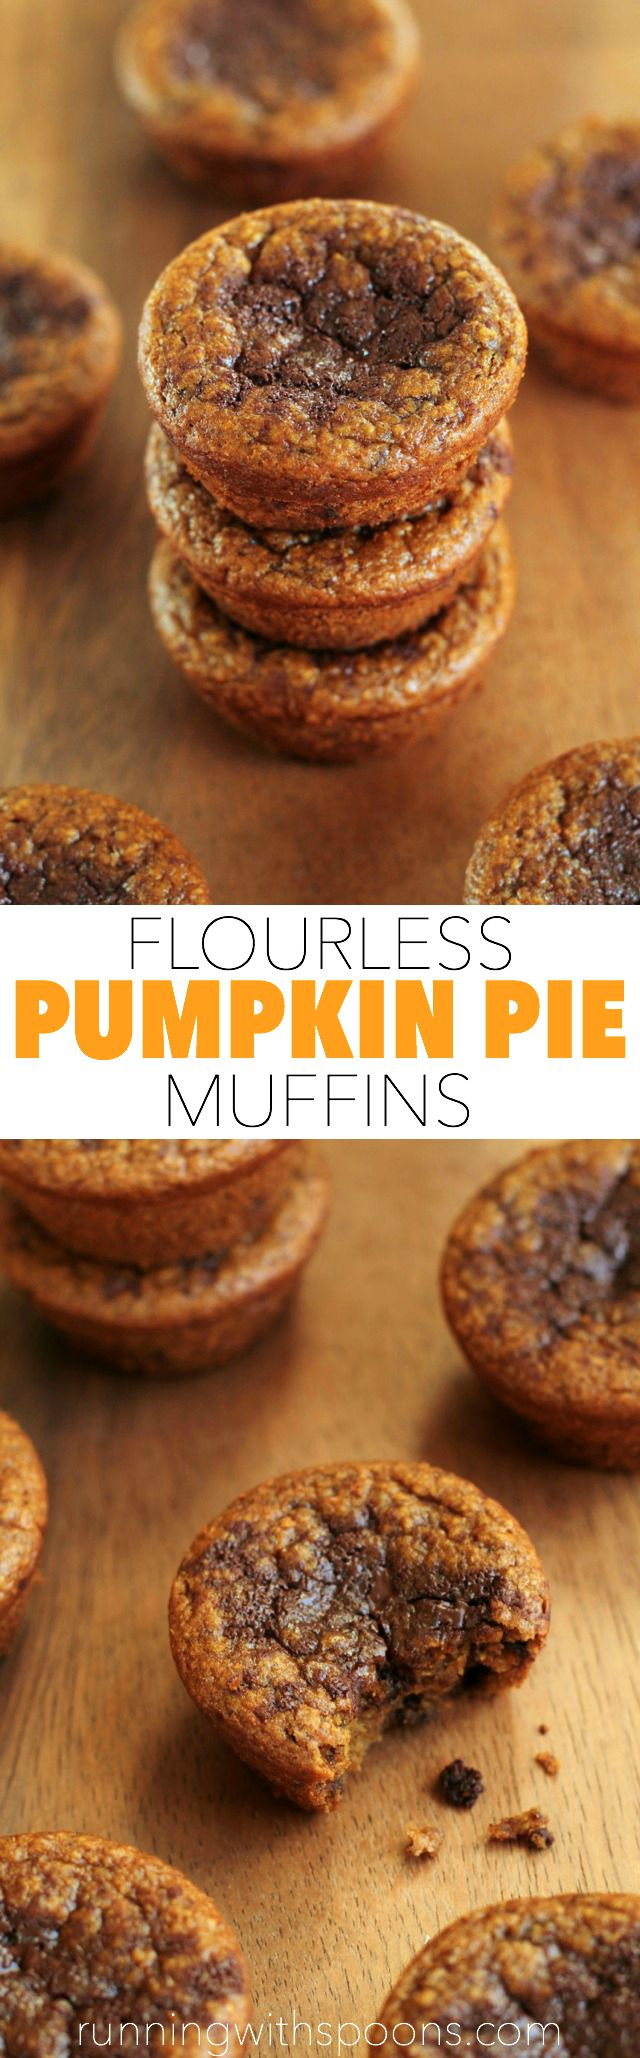 Flourless Pumpkin Pie Muffins -- you won't miss the flour, oil, or sugar in these soft and tender muffins! || runningwithspoons.com #glutenfree #pumpkin #muffins